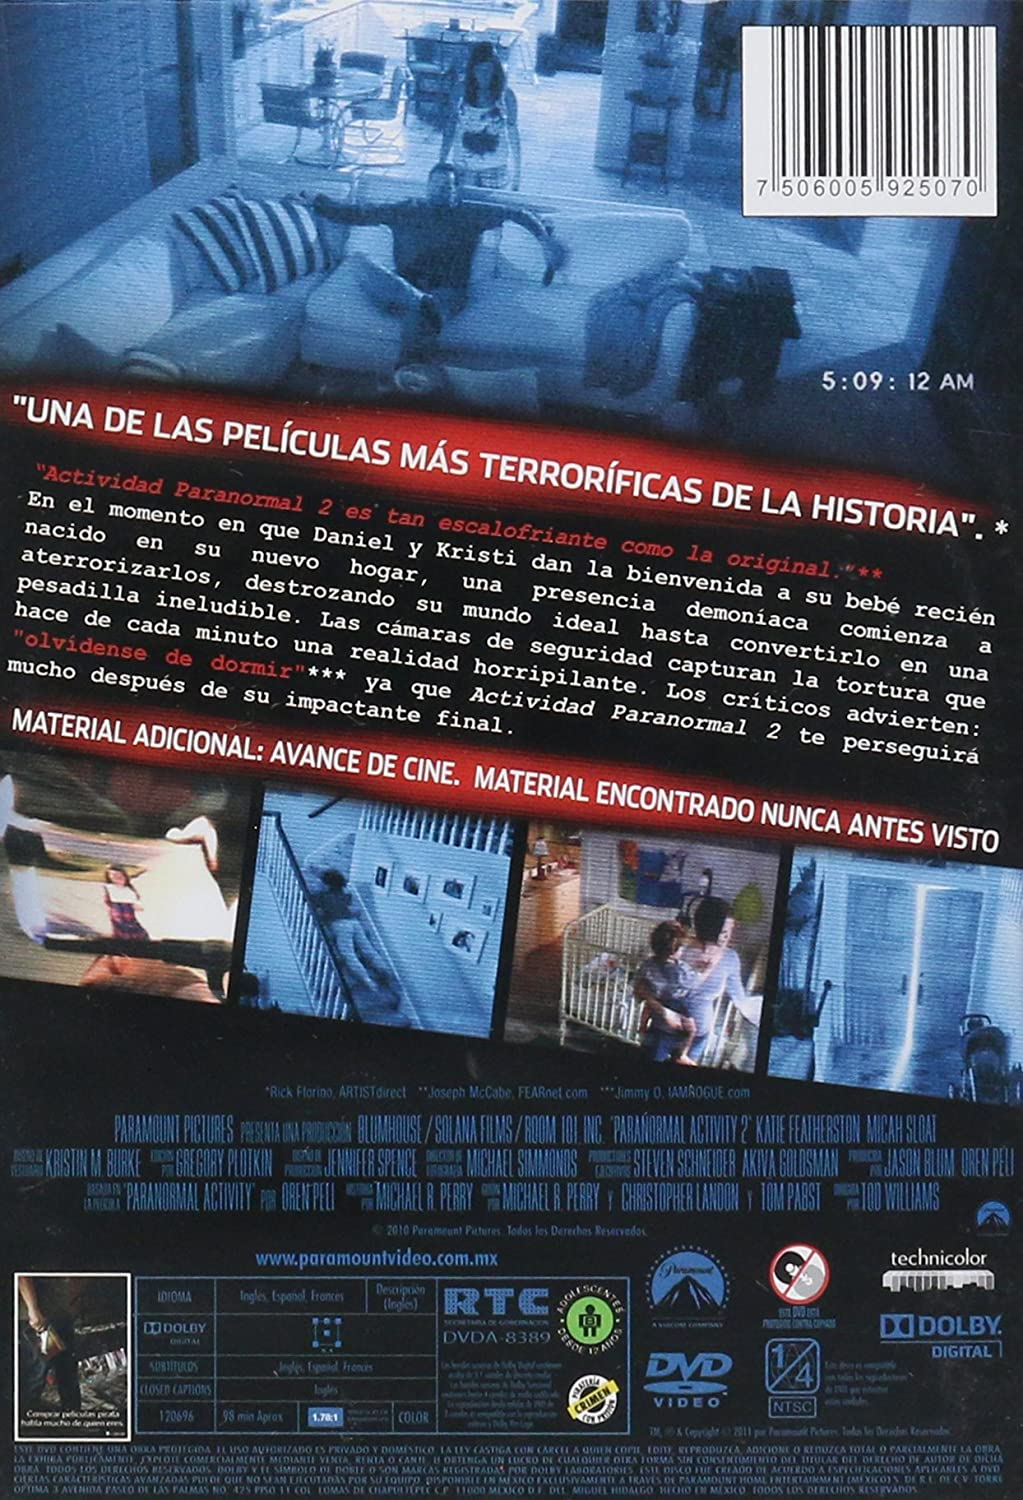 Amazon.com: ACTIVIDAD PARANORMAL 2 / DVD: Movies & TV